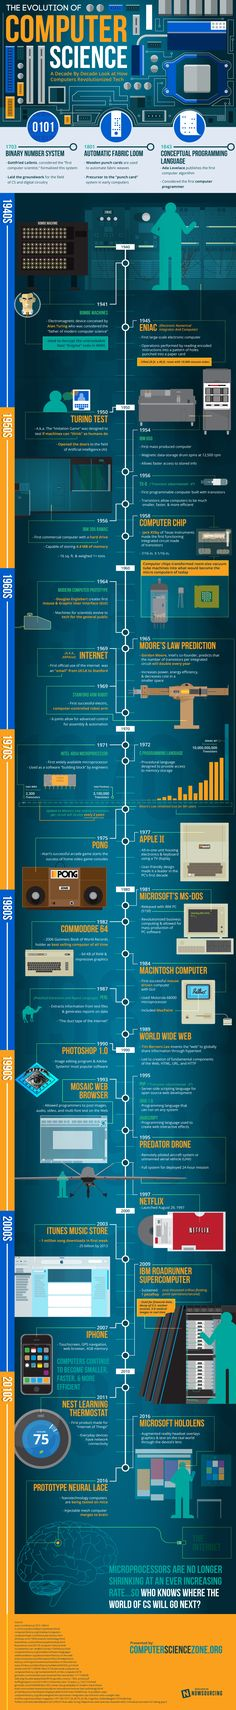 Evolution of Computer Science #Infographic #ComputerScience